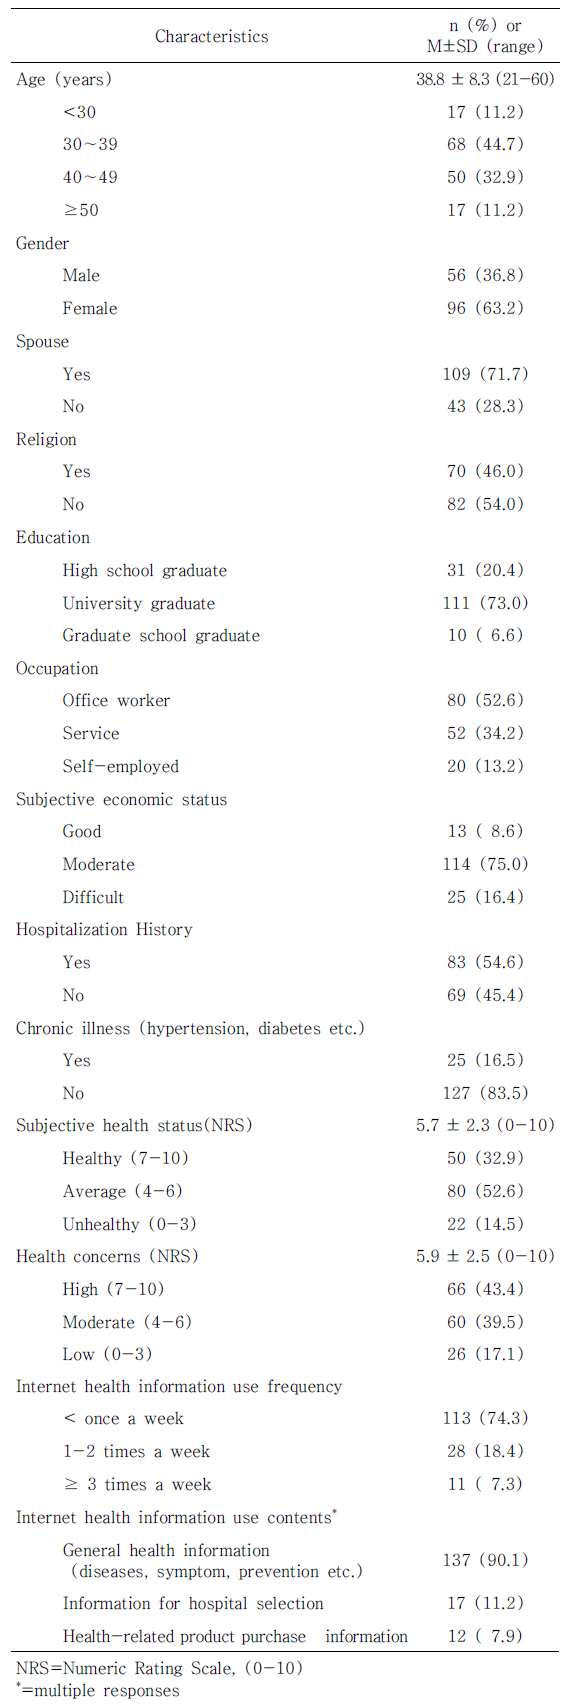 Table 1. General Characteristics and Internet Health Information Use Characteristics of Subjects (N=152)